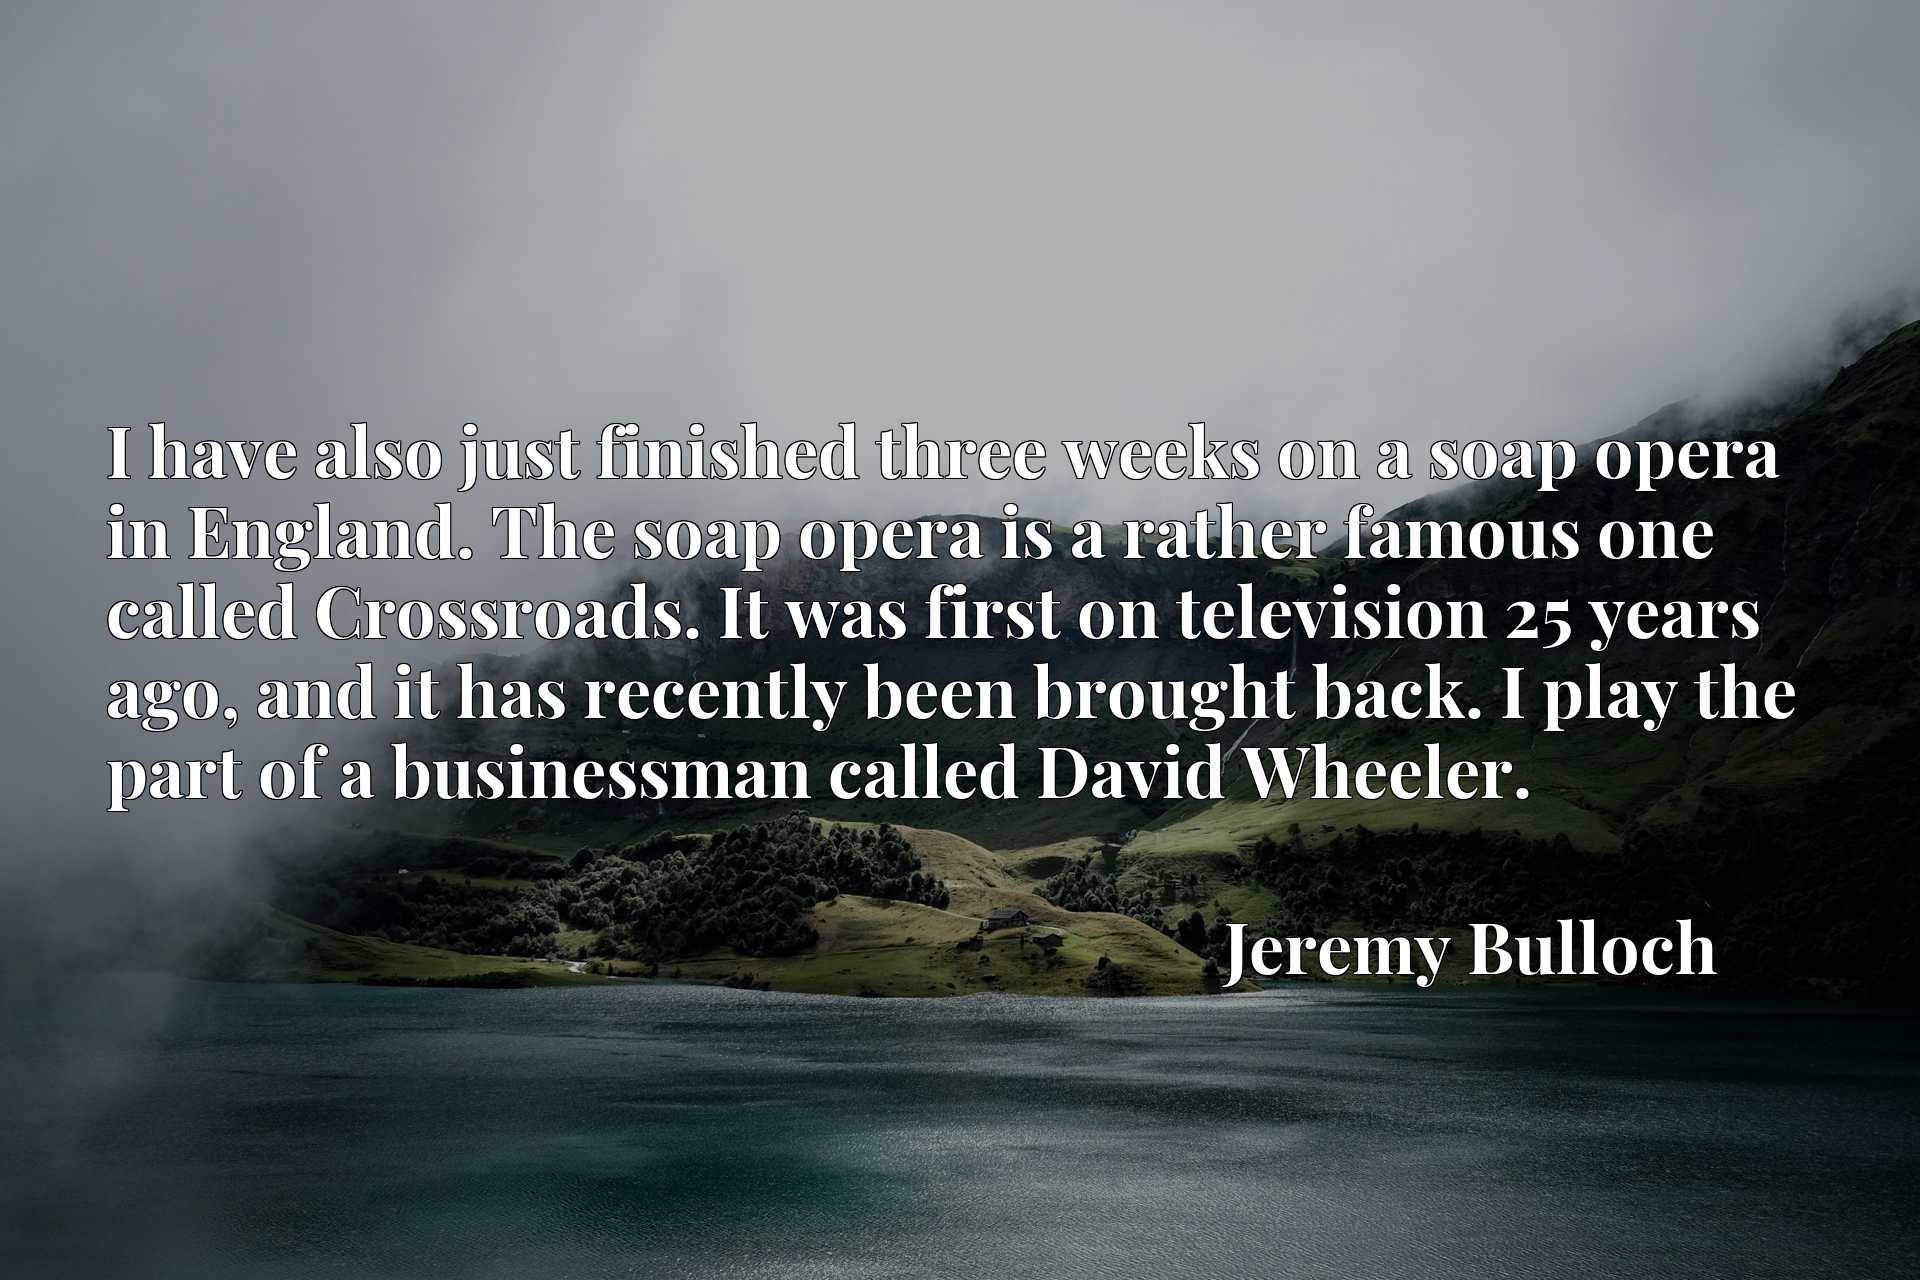 I have also just finished three weeks on a soap opera in England. The soap opera is a rather famous one called Crossroads. It was first on television 25 years ago, and it has recently been brought back. I play the part of a businessman called David Wheeler.